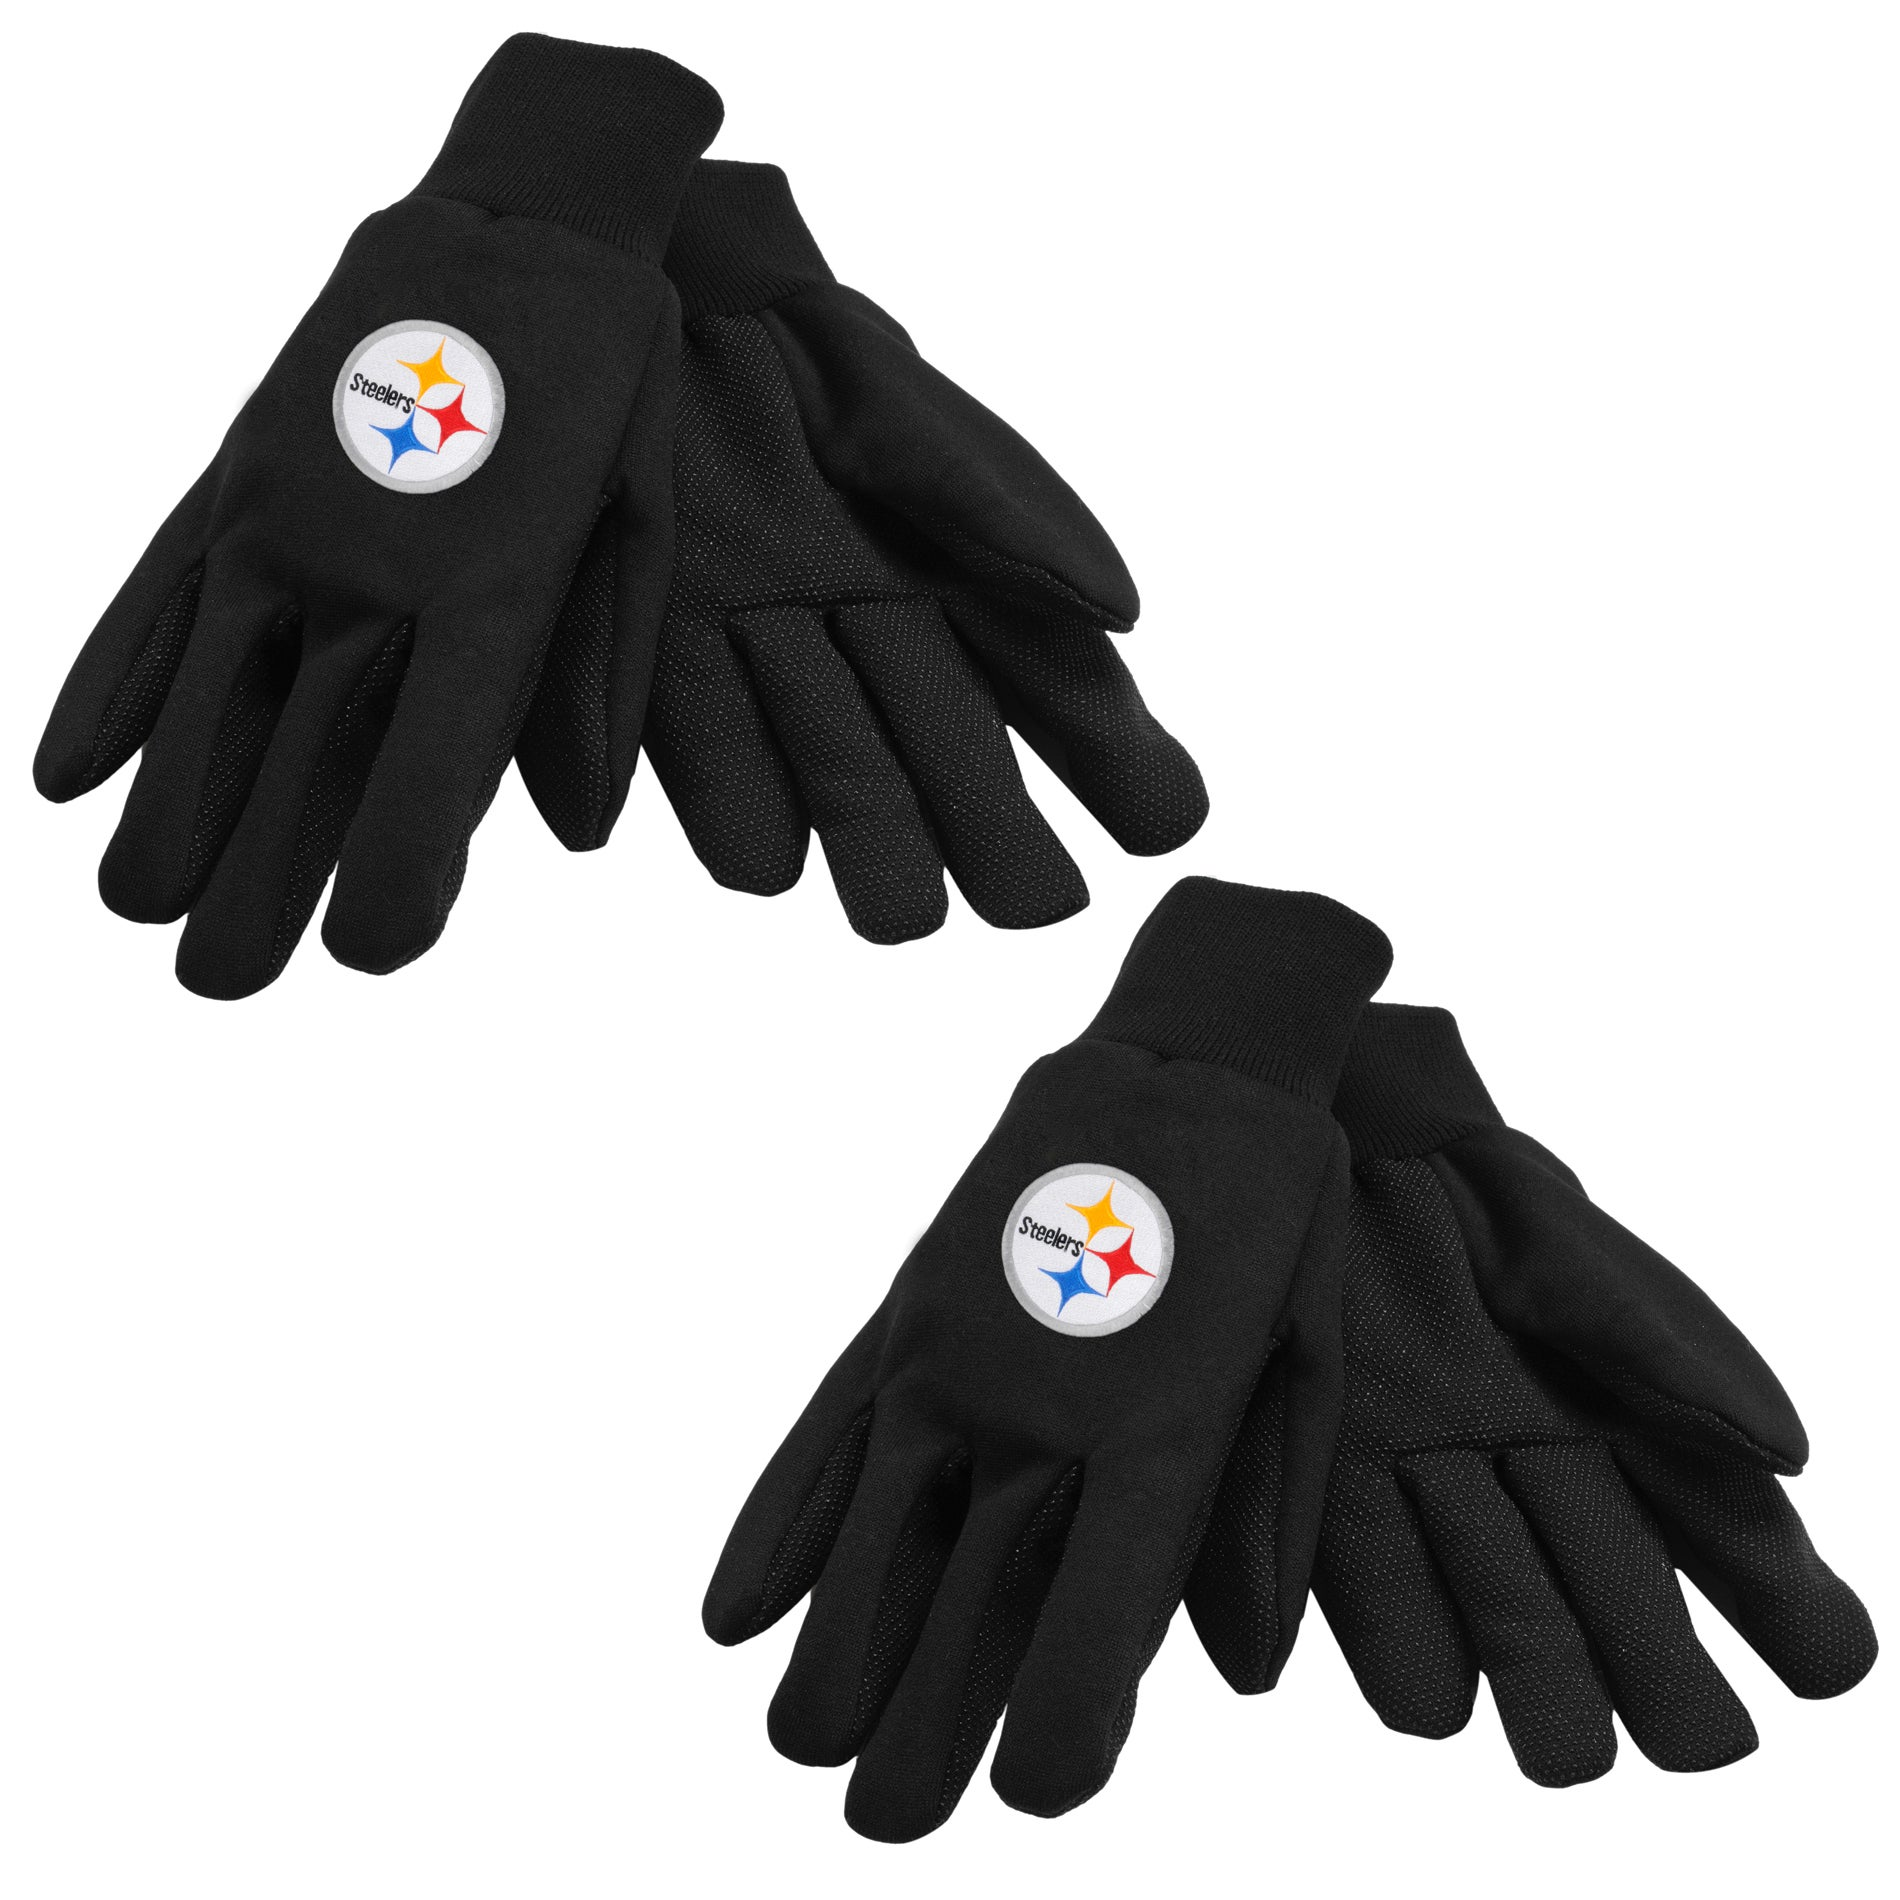 Pittsburgh Steelers Two-tone Gloves (Set of 2 Pair)